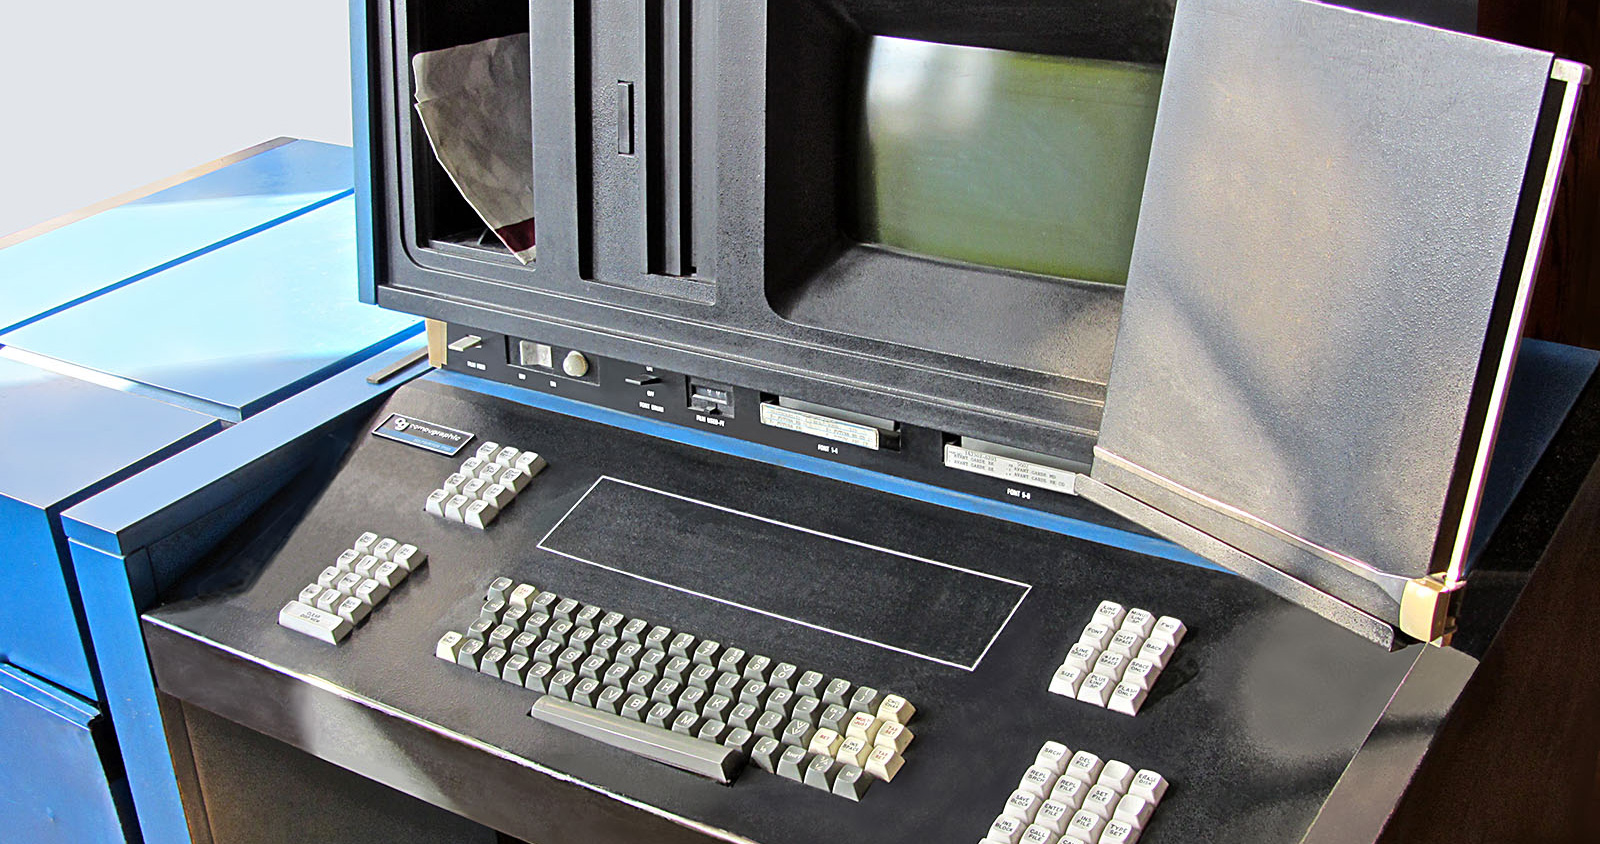 Photo of a Compugraphic EditWriter 7500